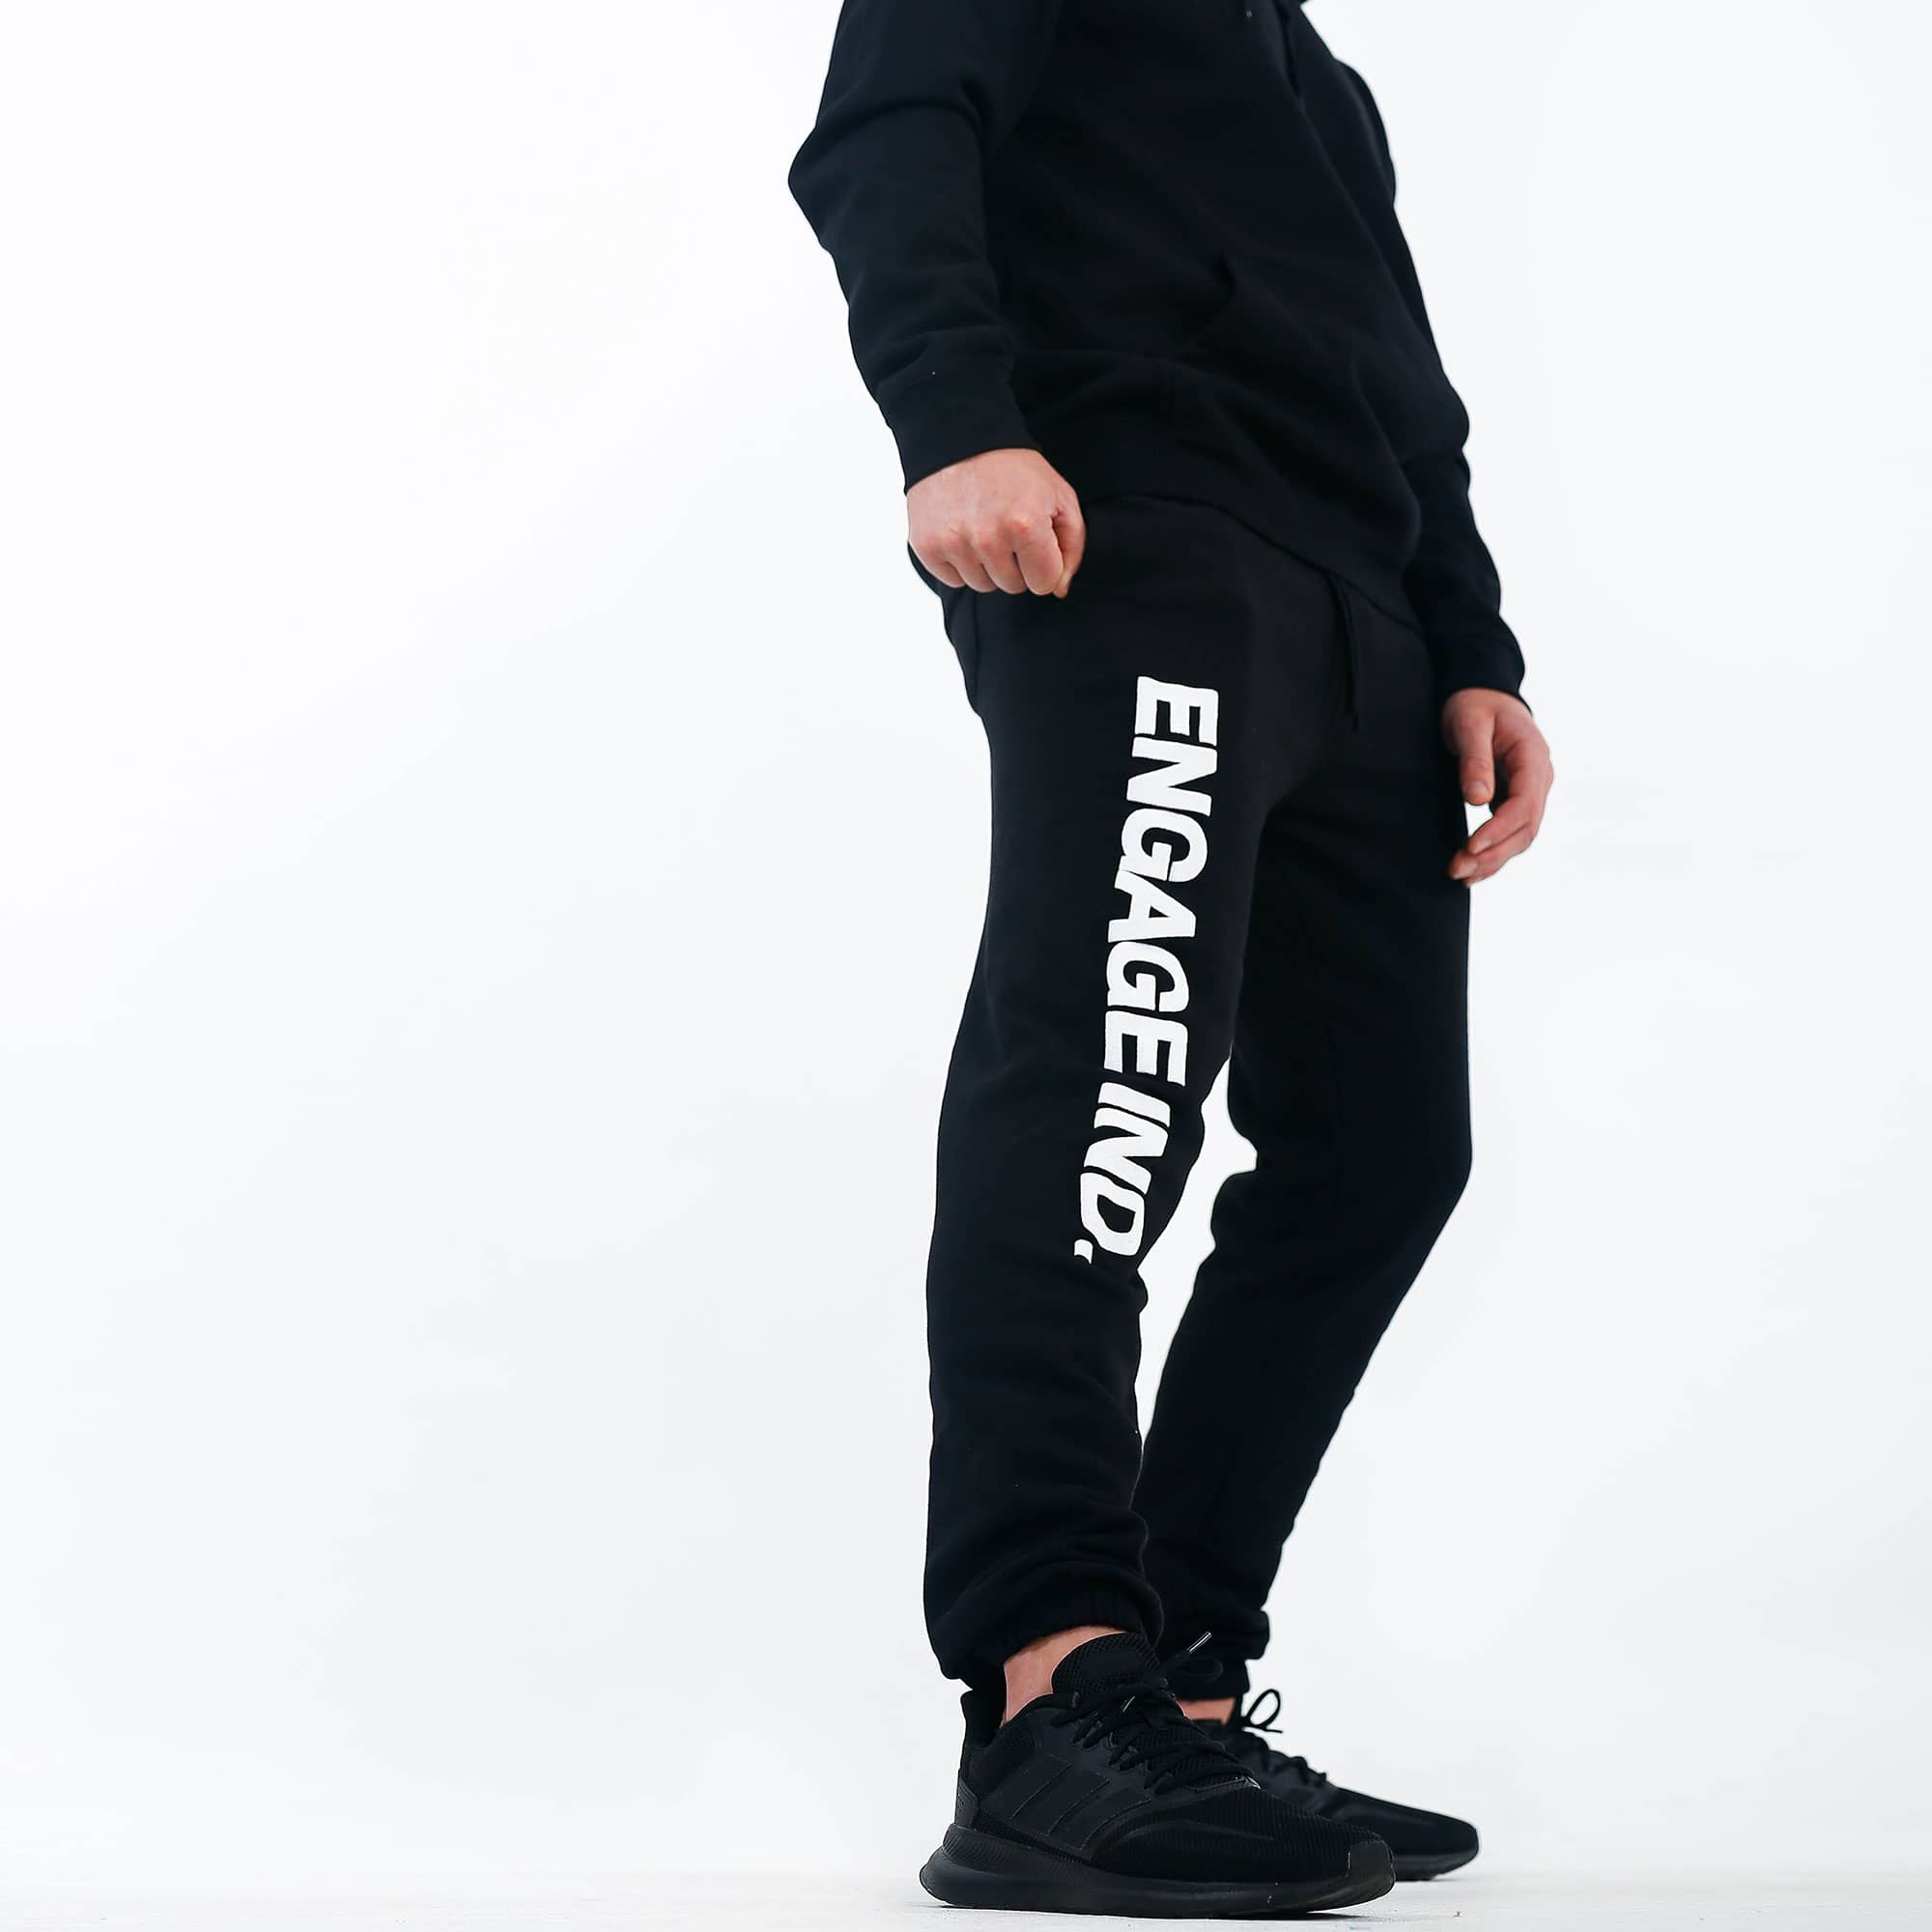 Engage Fleece Puff Print Black Track Pants